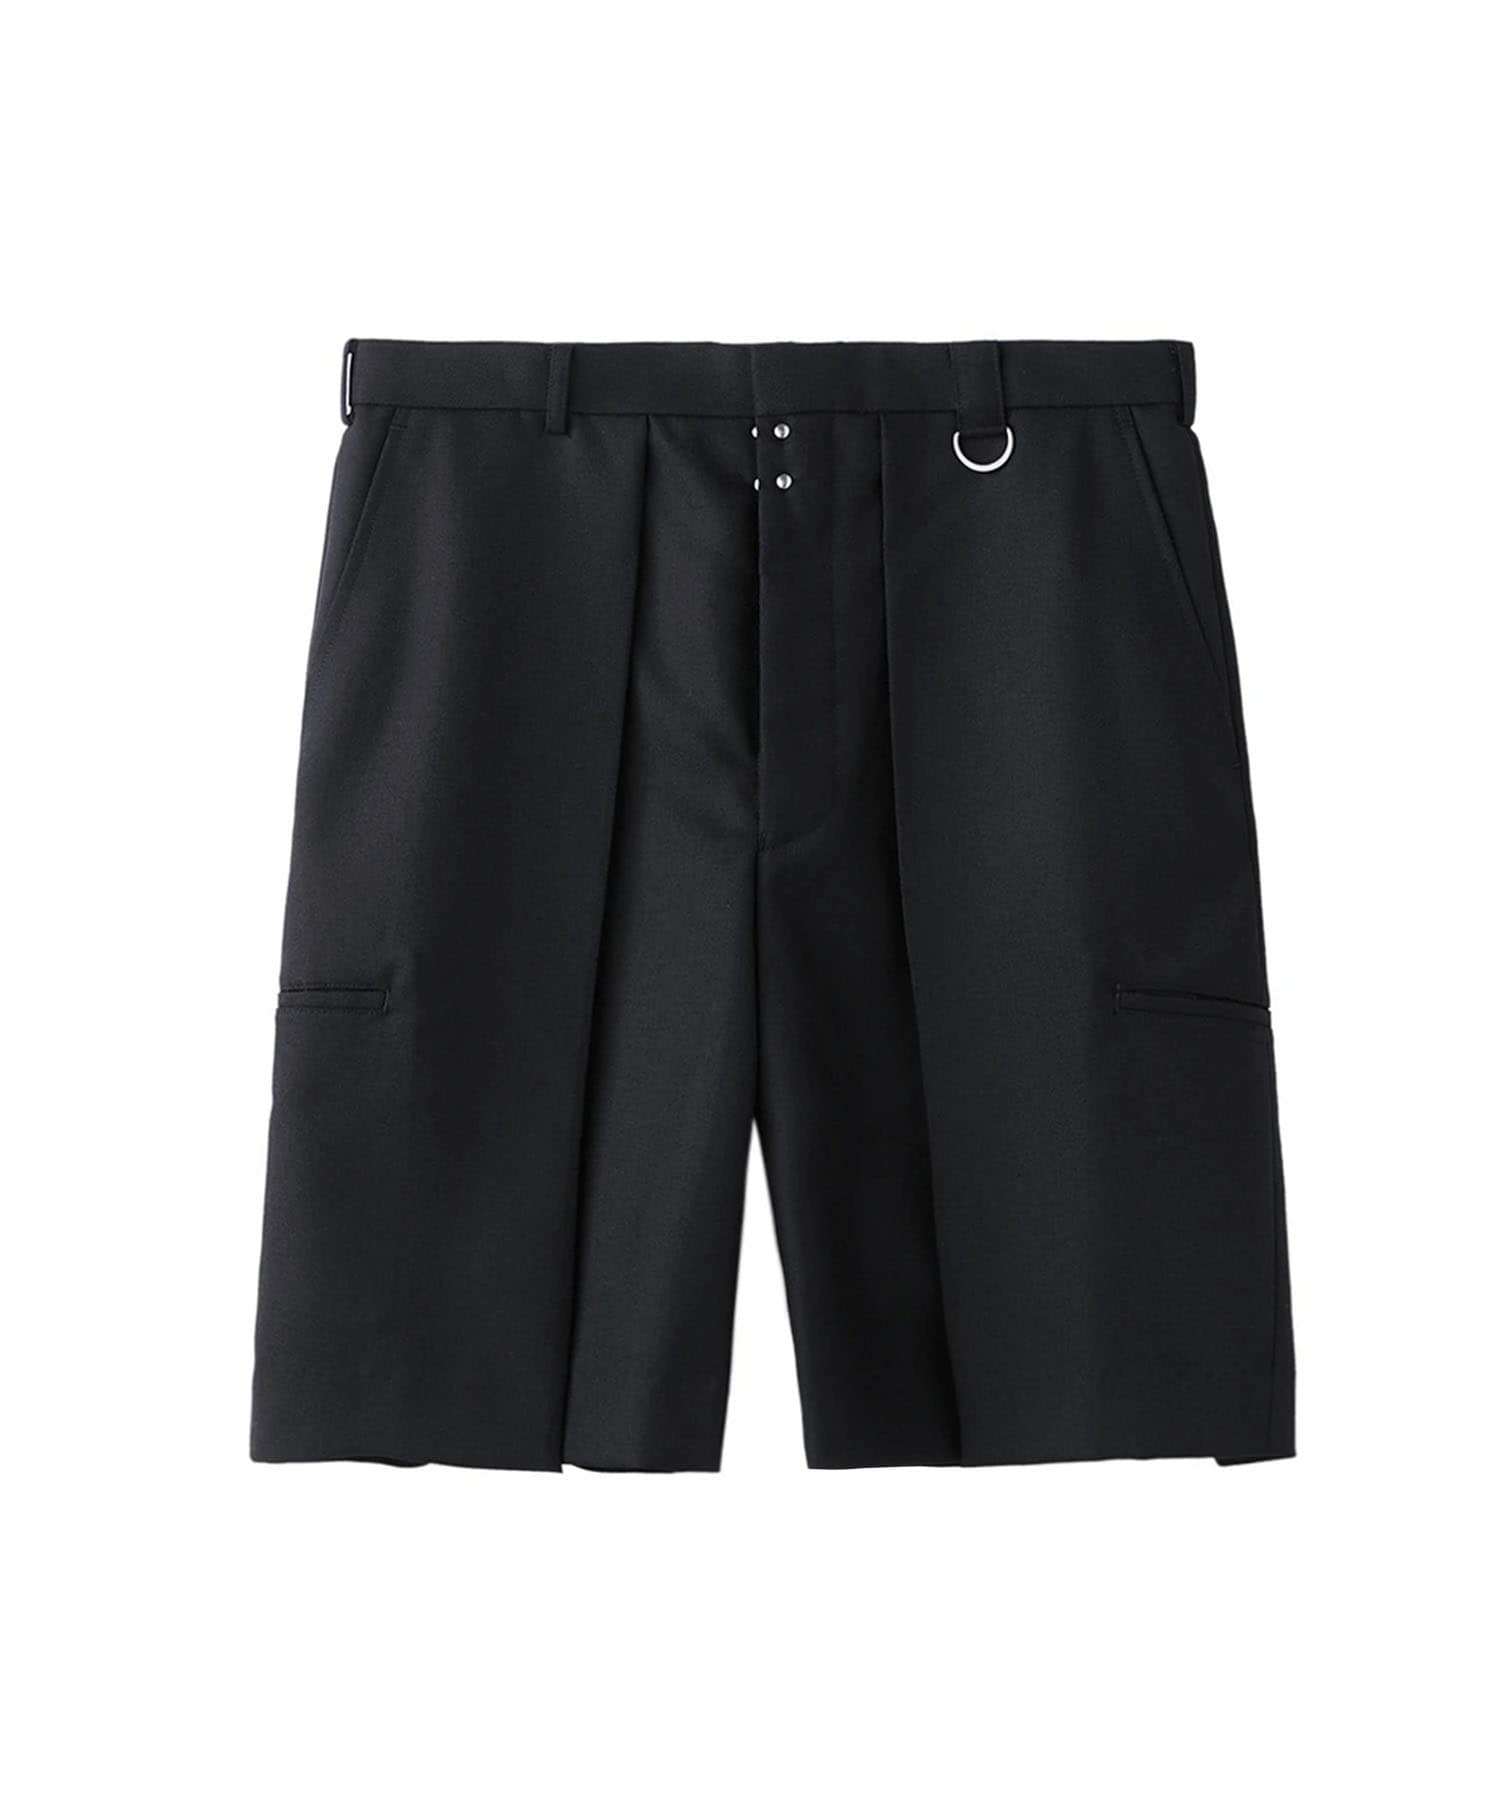 WIDE TUCK SHORTS